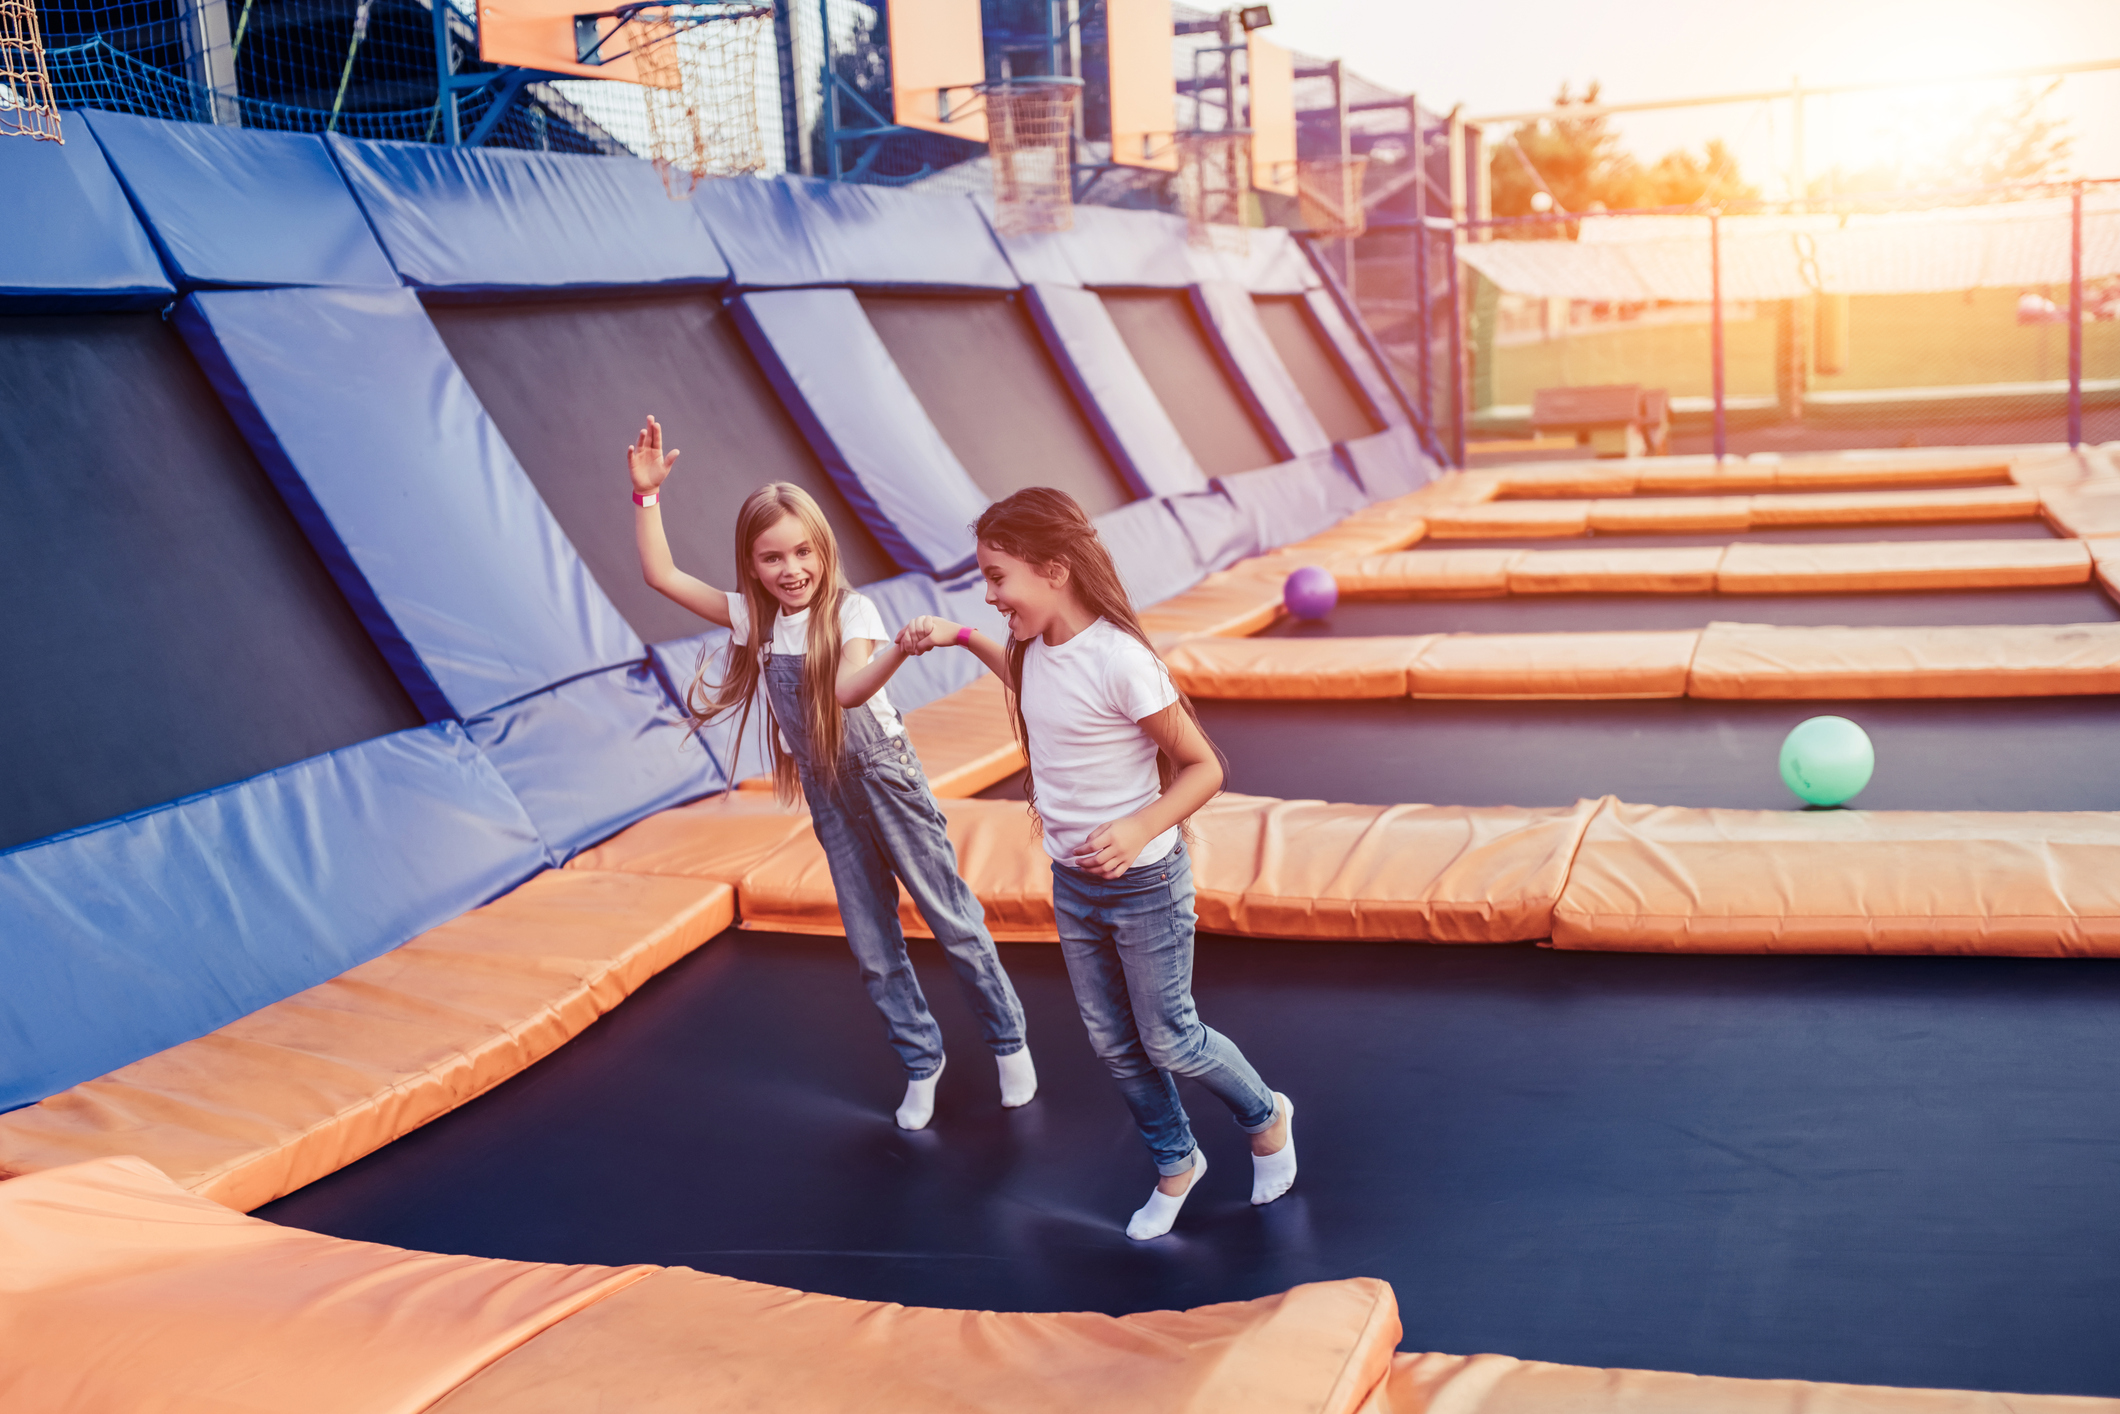 Liability Insurance for Trampoline Parks